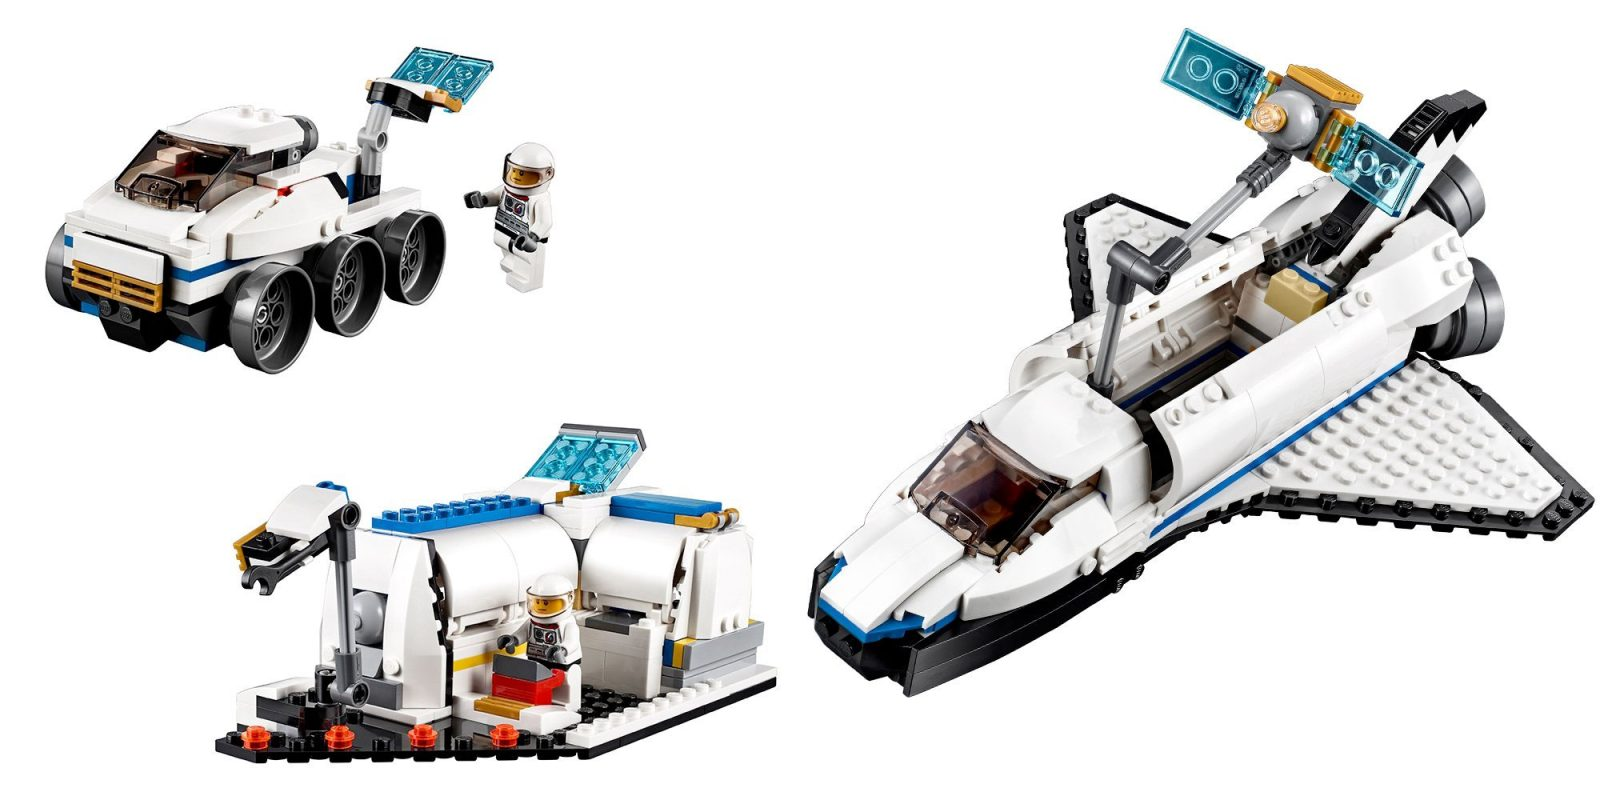 space shuttle explorer lego - photo #14